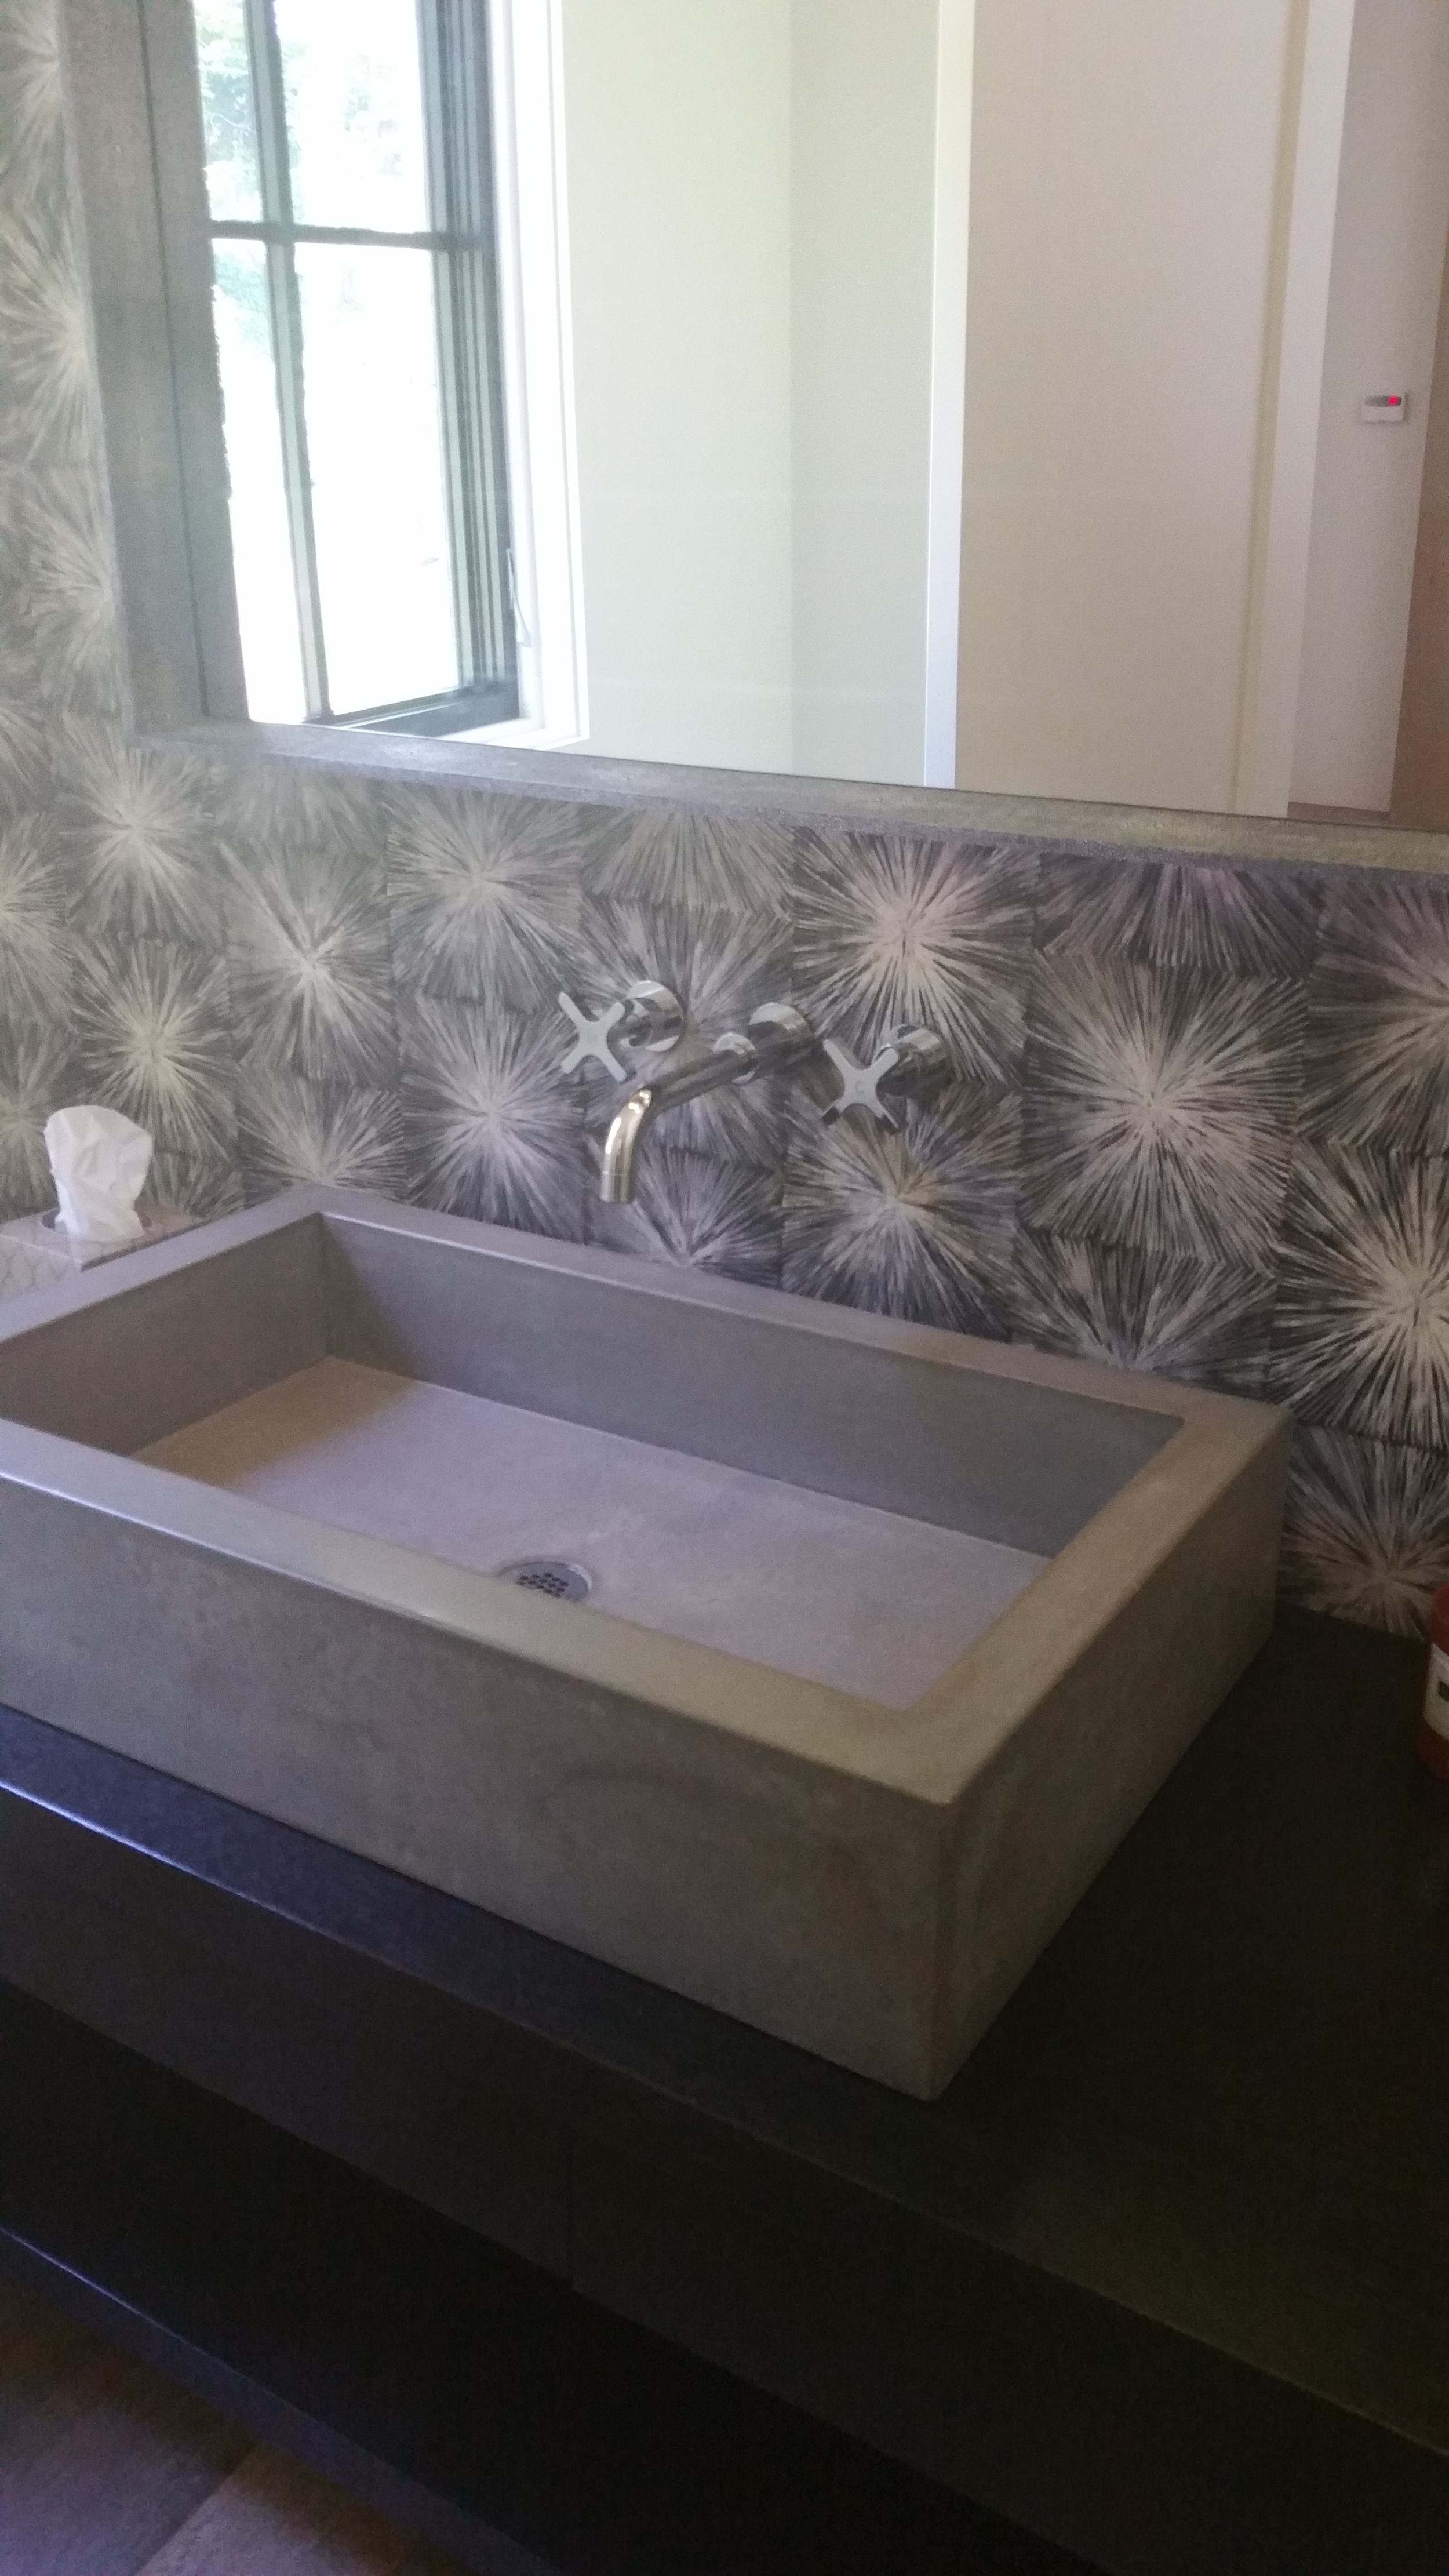 Concrete vessel sink and modern wallpaper give PR a wow factor